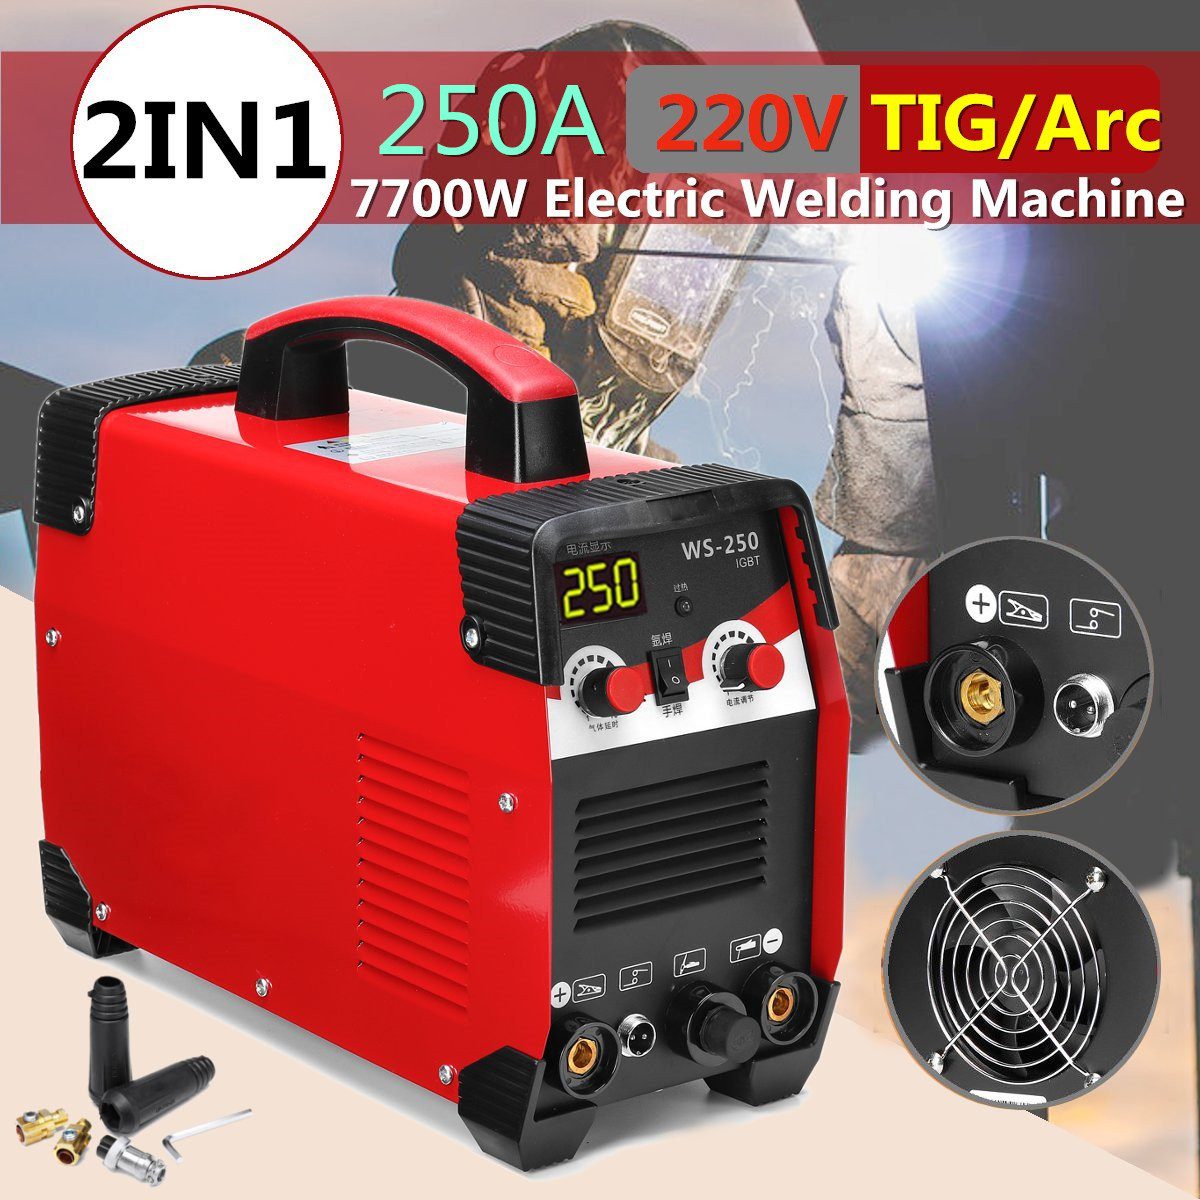 2IN1 220V 7700W TIG/ARC Electric Welding Machine 20 250A MMA IGBT STICK Inverter For Welding Working and Electric Working